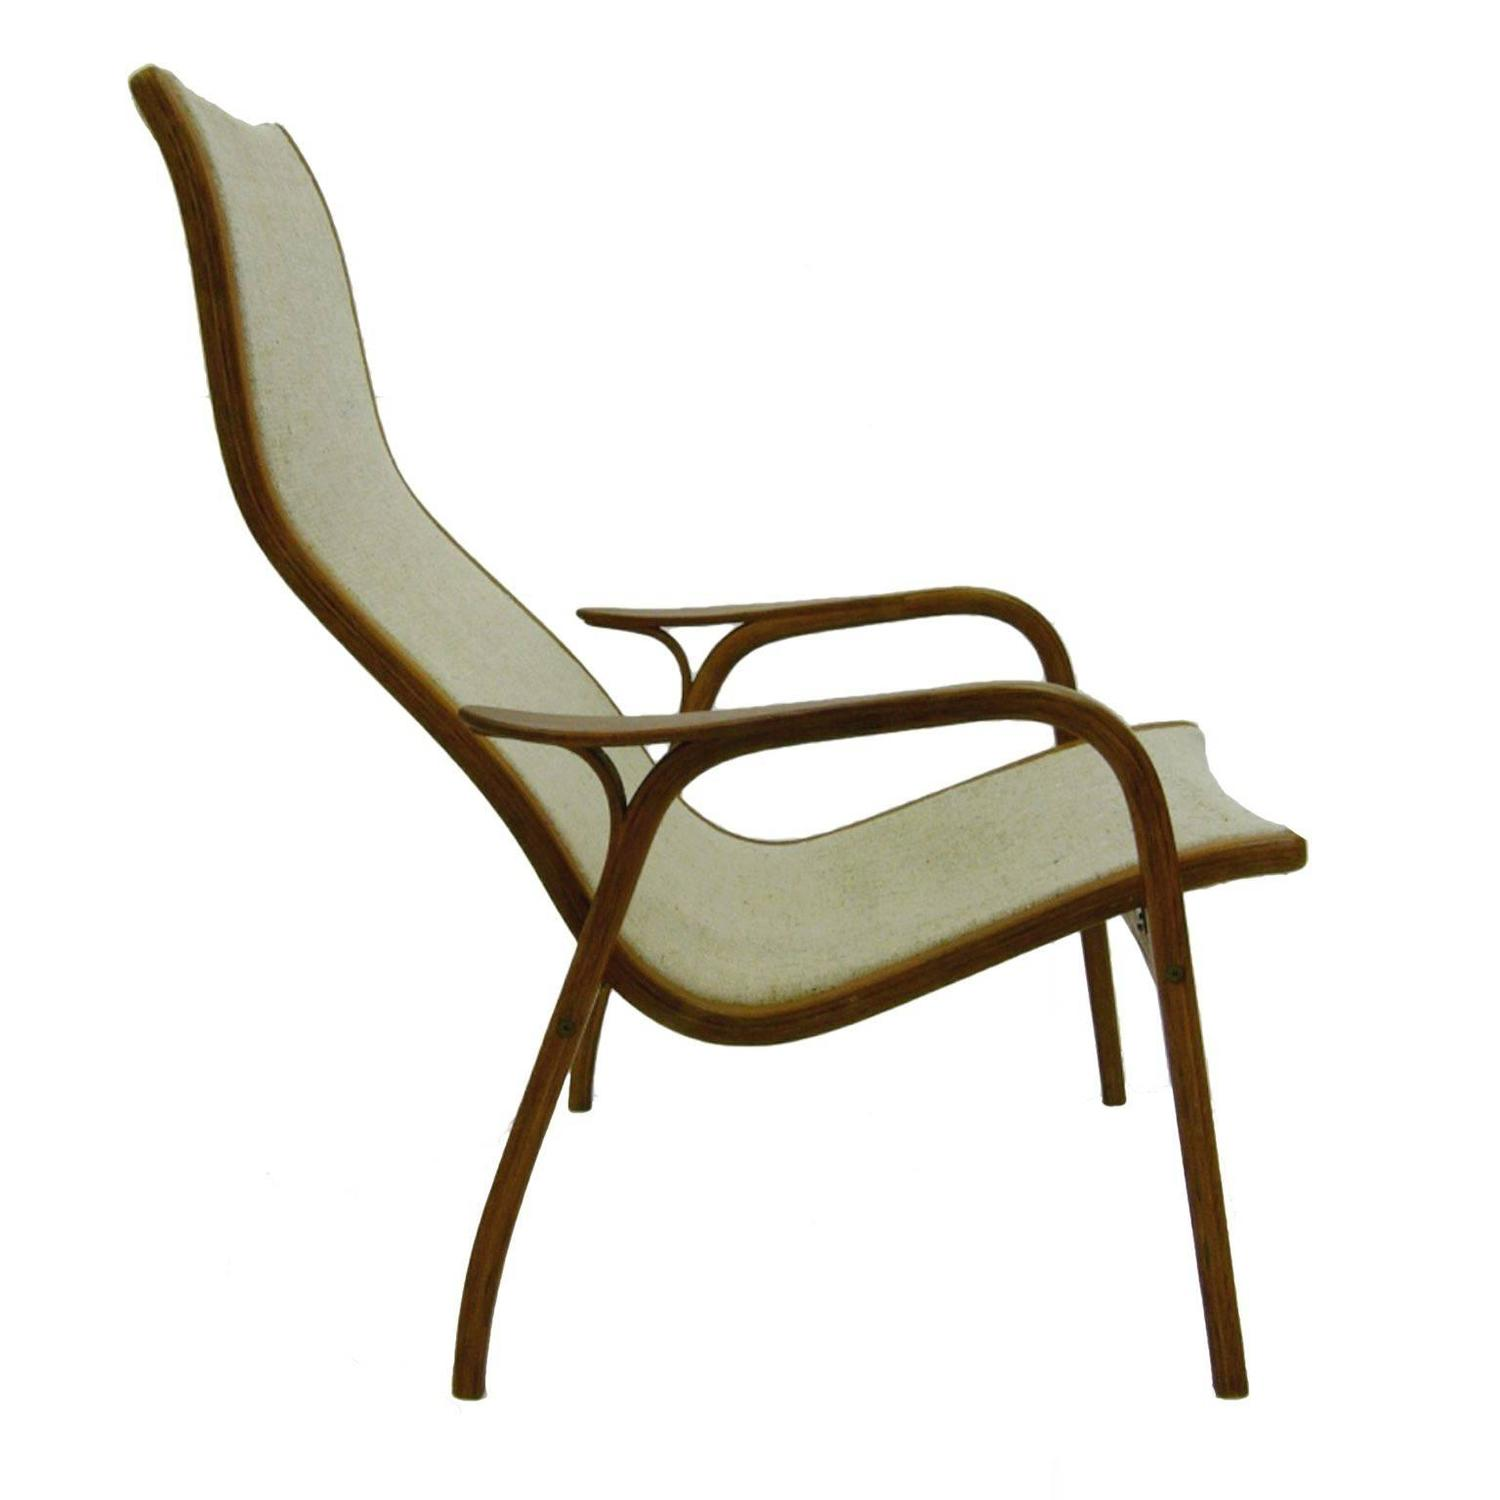 "Yngve Ekstrom Bent Teakwood""Lamino"" Chair for Swedese at 1stdibs"